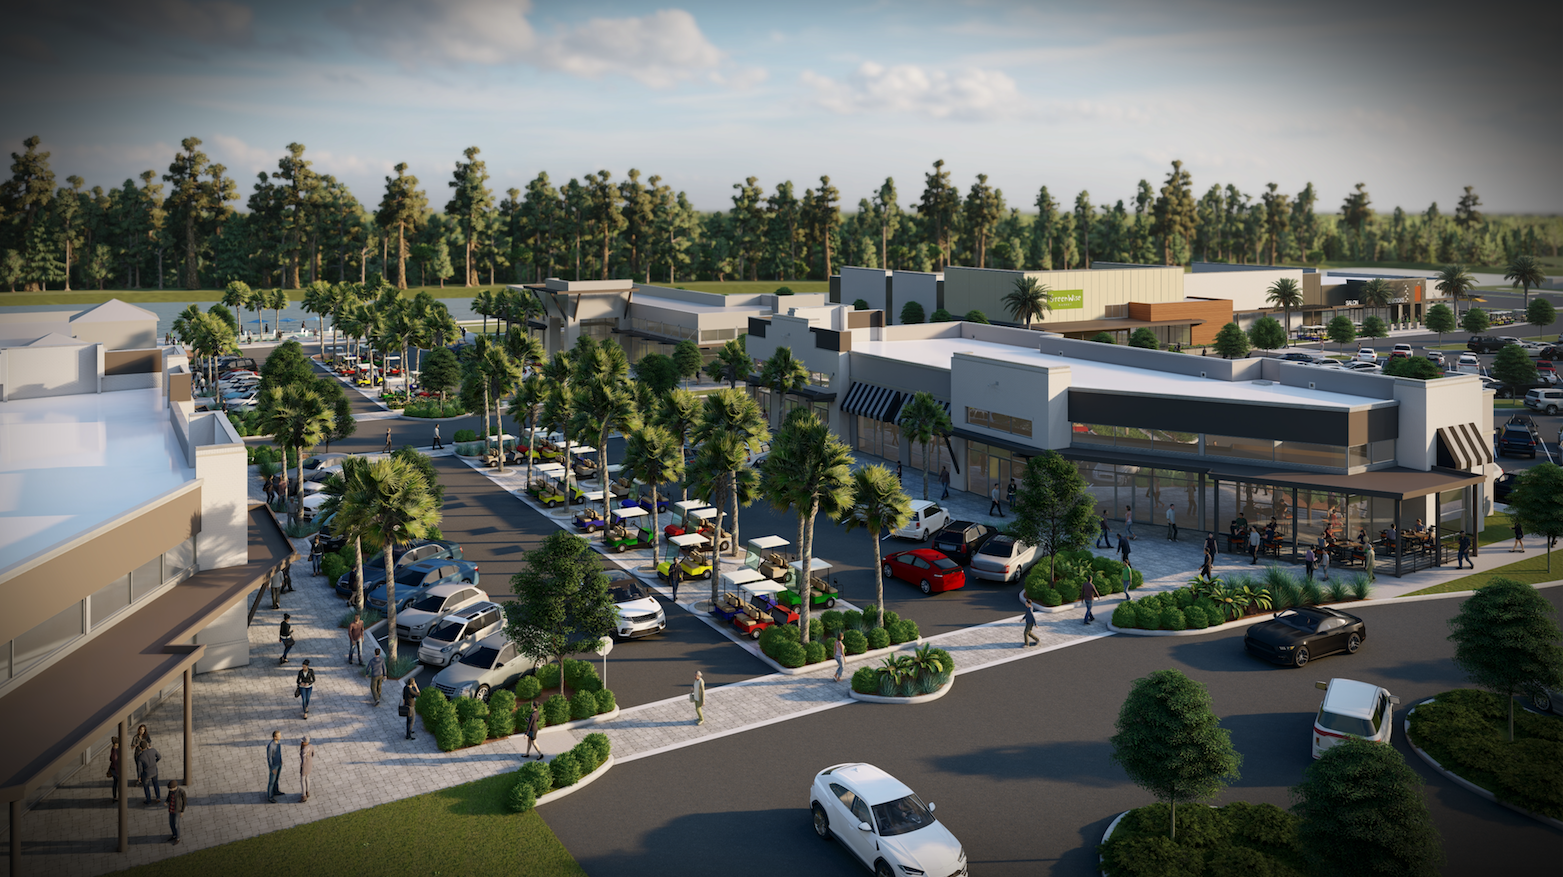 3D RENDERING OF THE EXPANDED NOCATEE TOWN CENTER